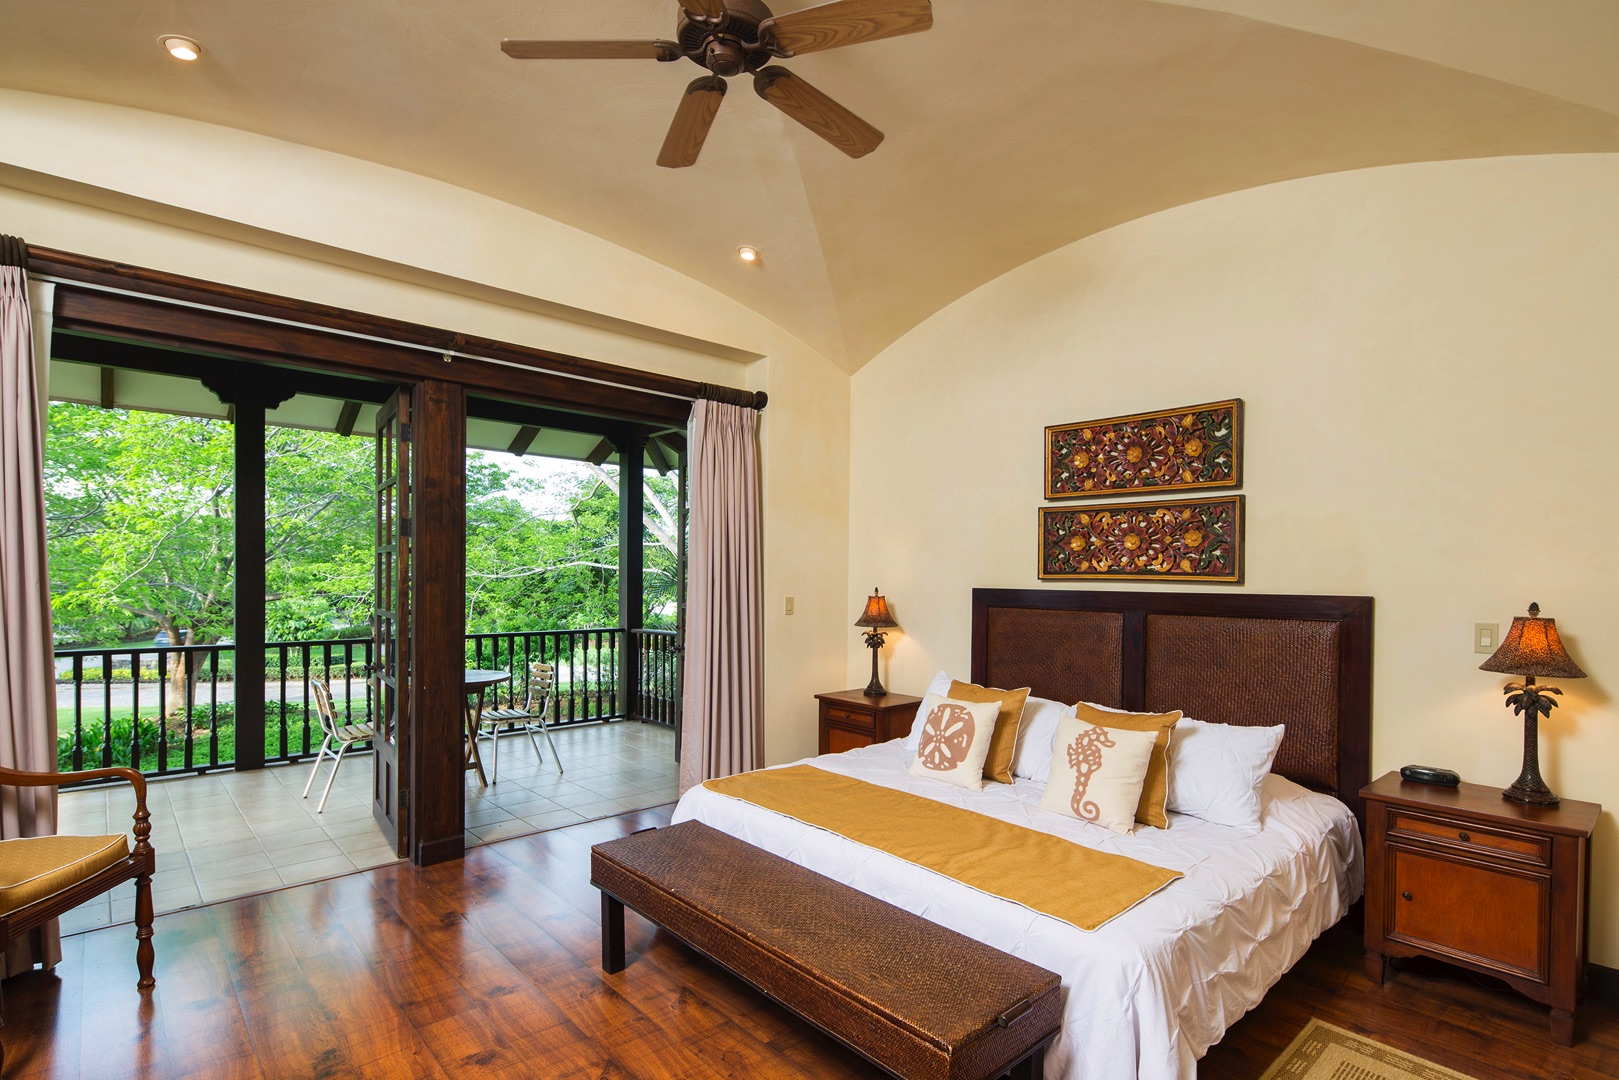 Master bedroom with king bed, steps from balcony